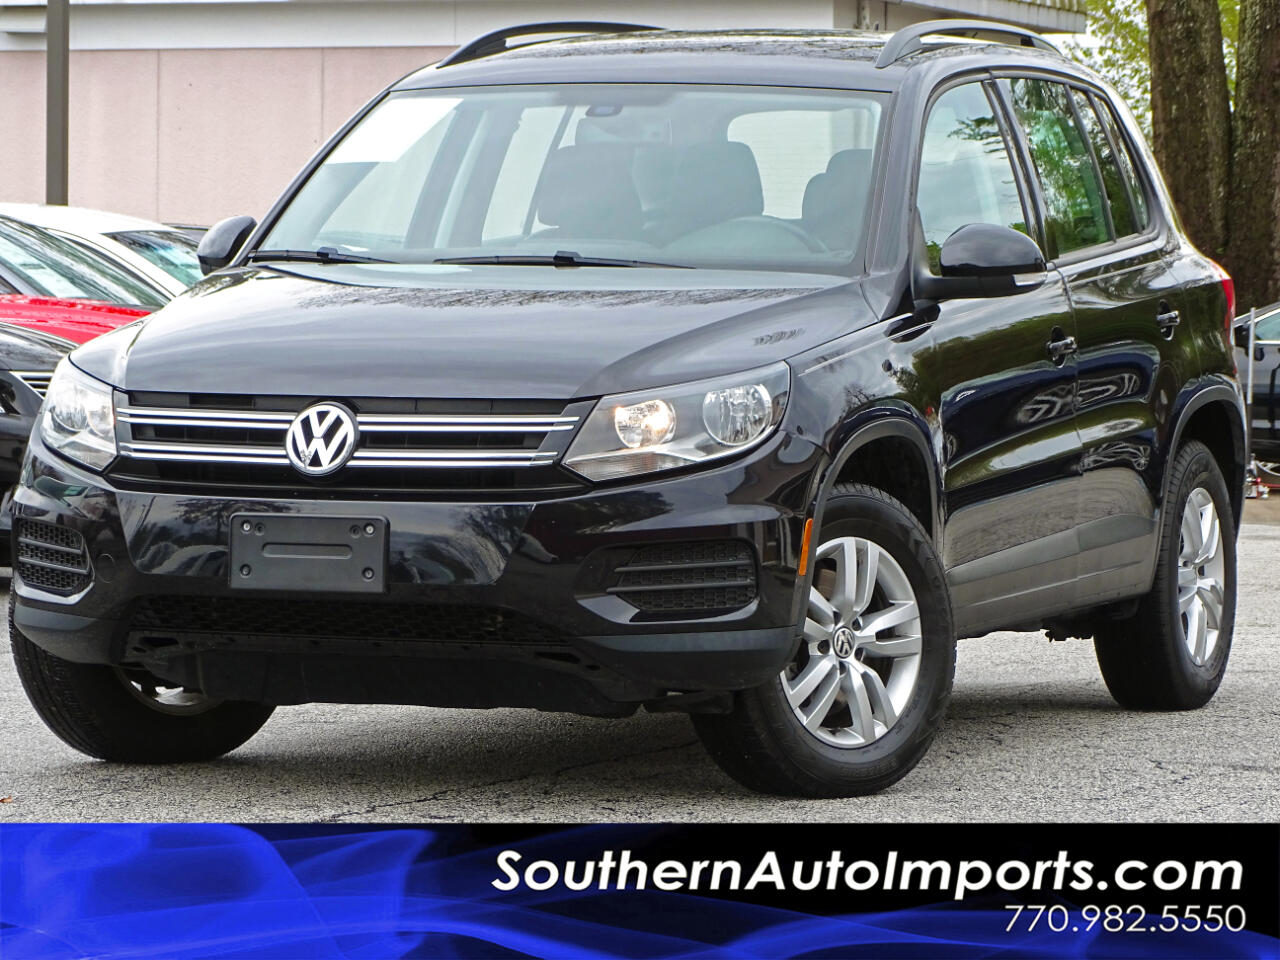 2016 Volkswagen Tiguan S w/Back up Camera Heated Seats Keyless Entry